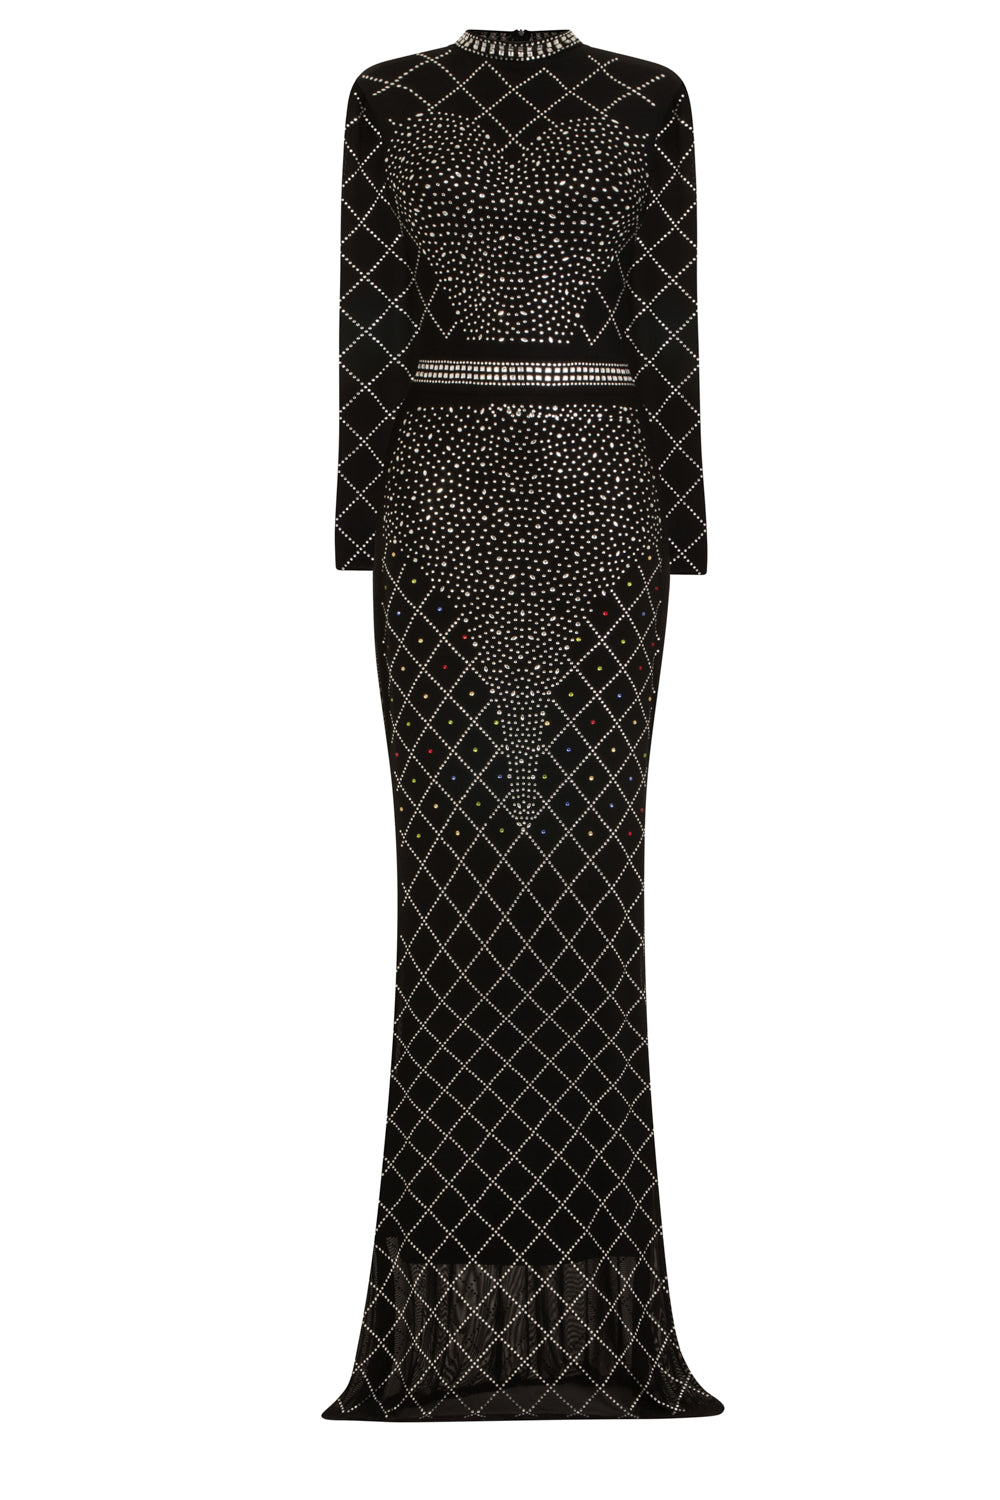 Ice Queen Black Crystal Rhinestone Mesh Bodycon Mermaid Maxi Dress